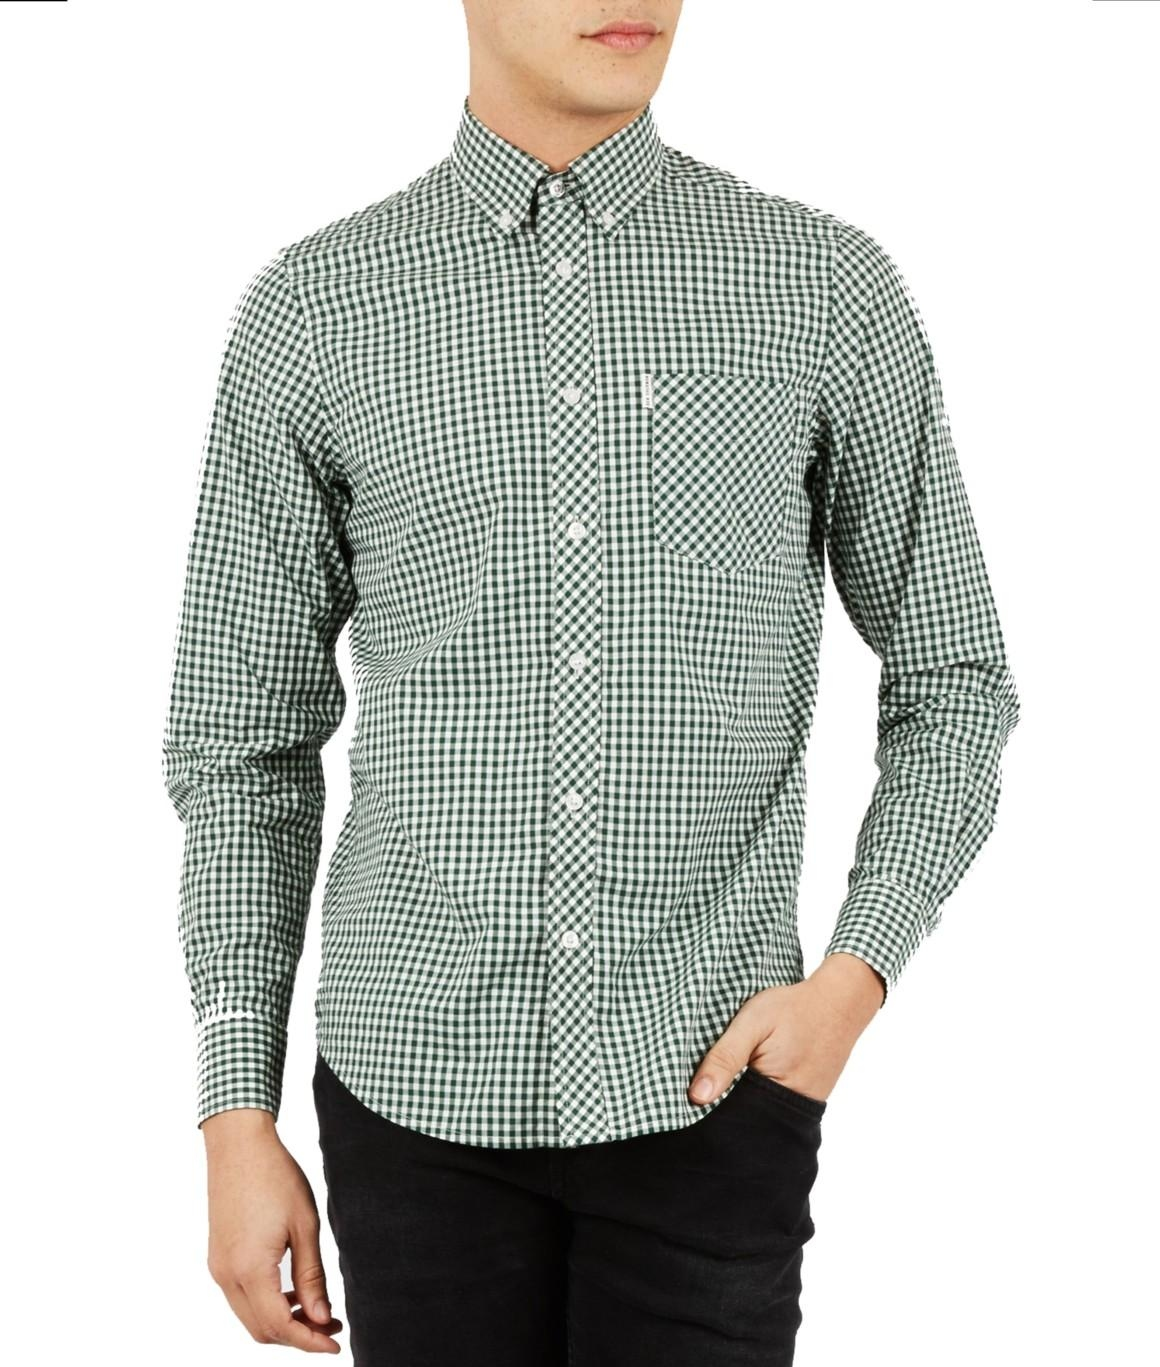 Ben Sherman, CLASSIC GINGHAM MOD FIT LS SHIRT, Forest Night, Number 3